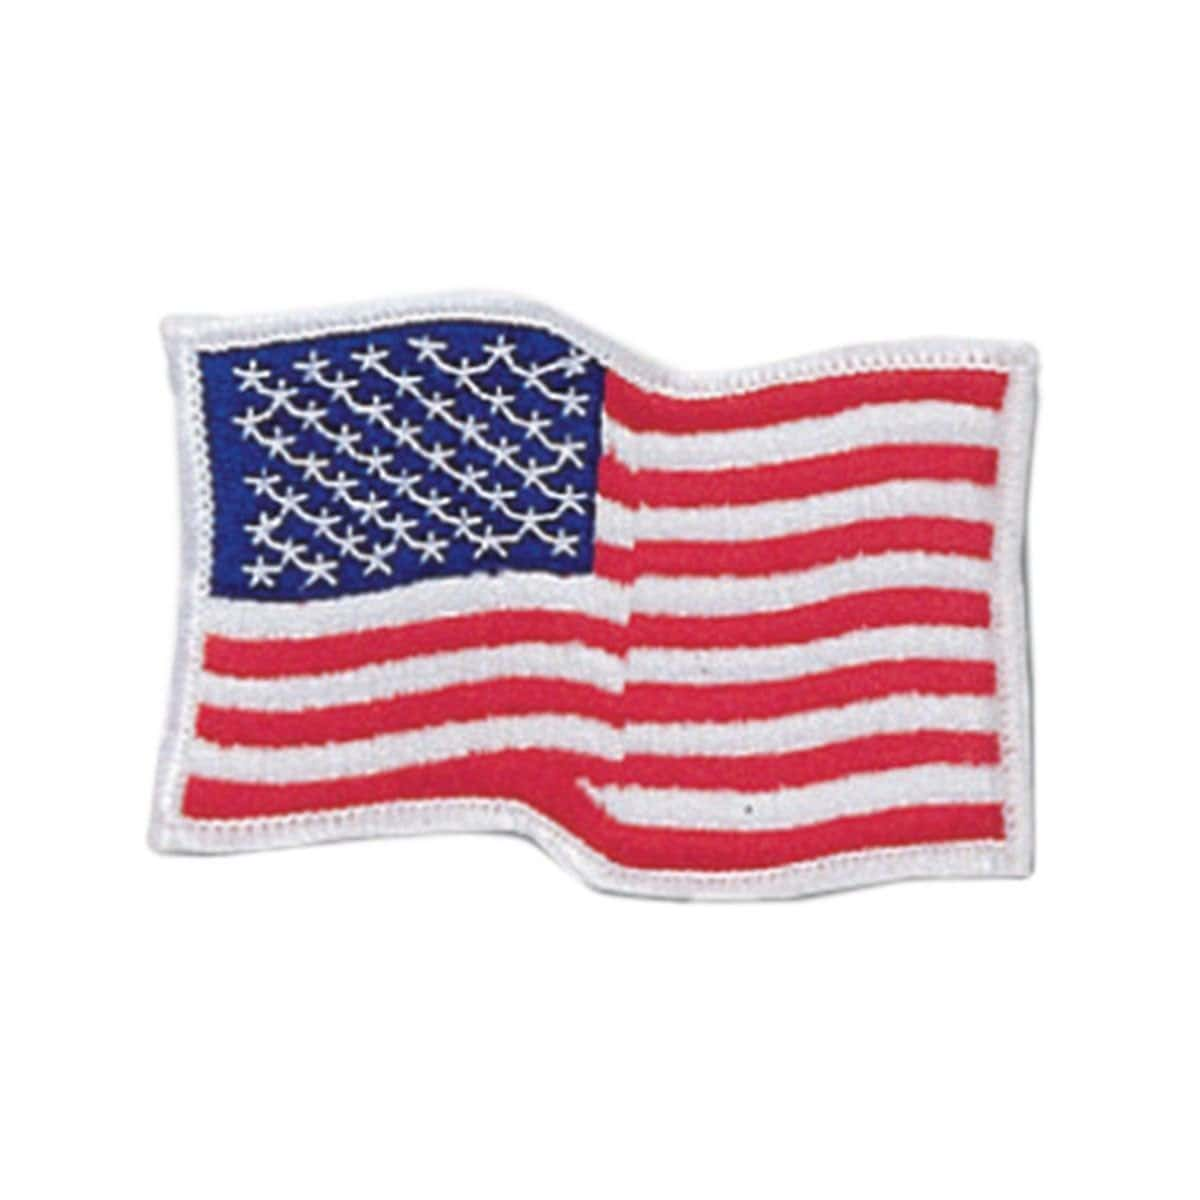 Waving American Flag Patch c0810WAM